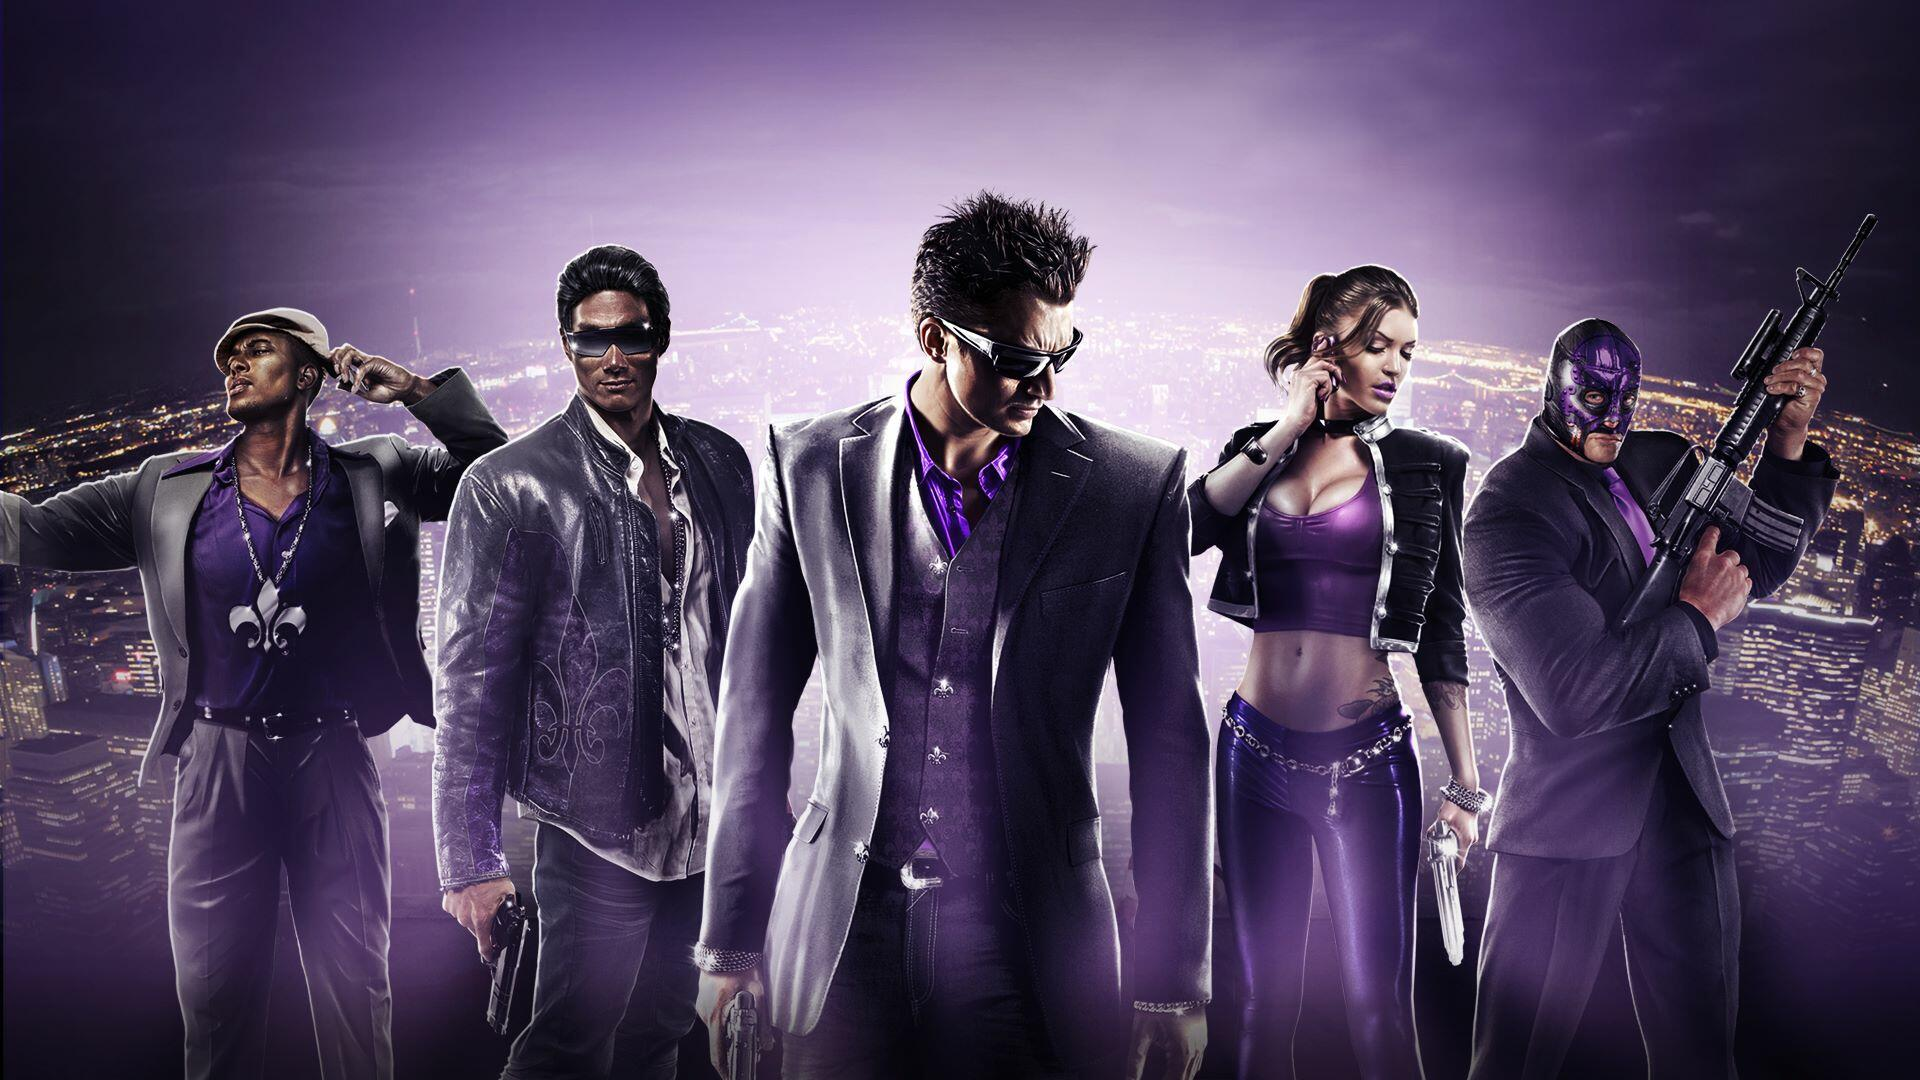 Saints Row Film Being Developed by Fast 8 and MIB International Director